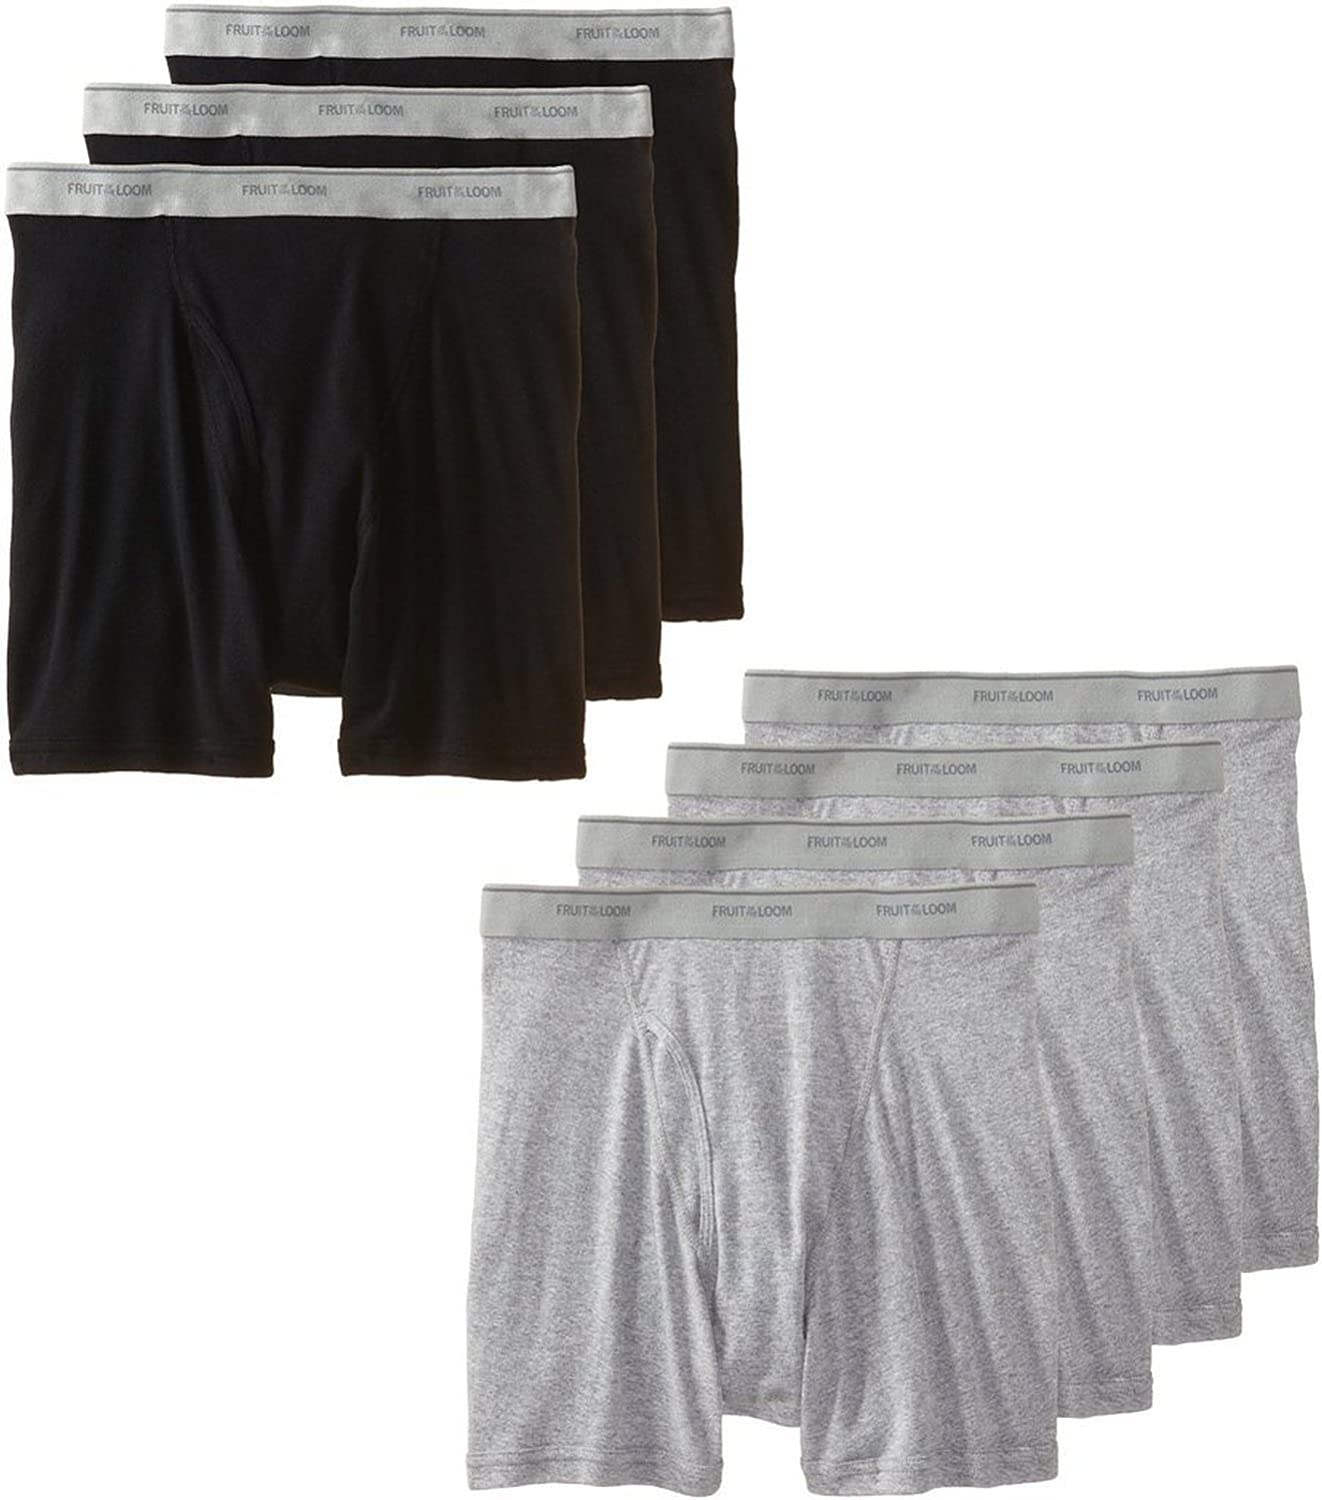 Fruit of the Loom Men's A surprise price Clearance SALE! Limited time! is realized Pack 7 brief boxer